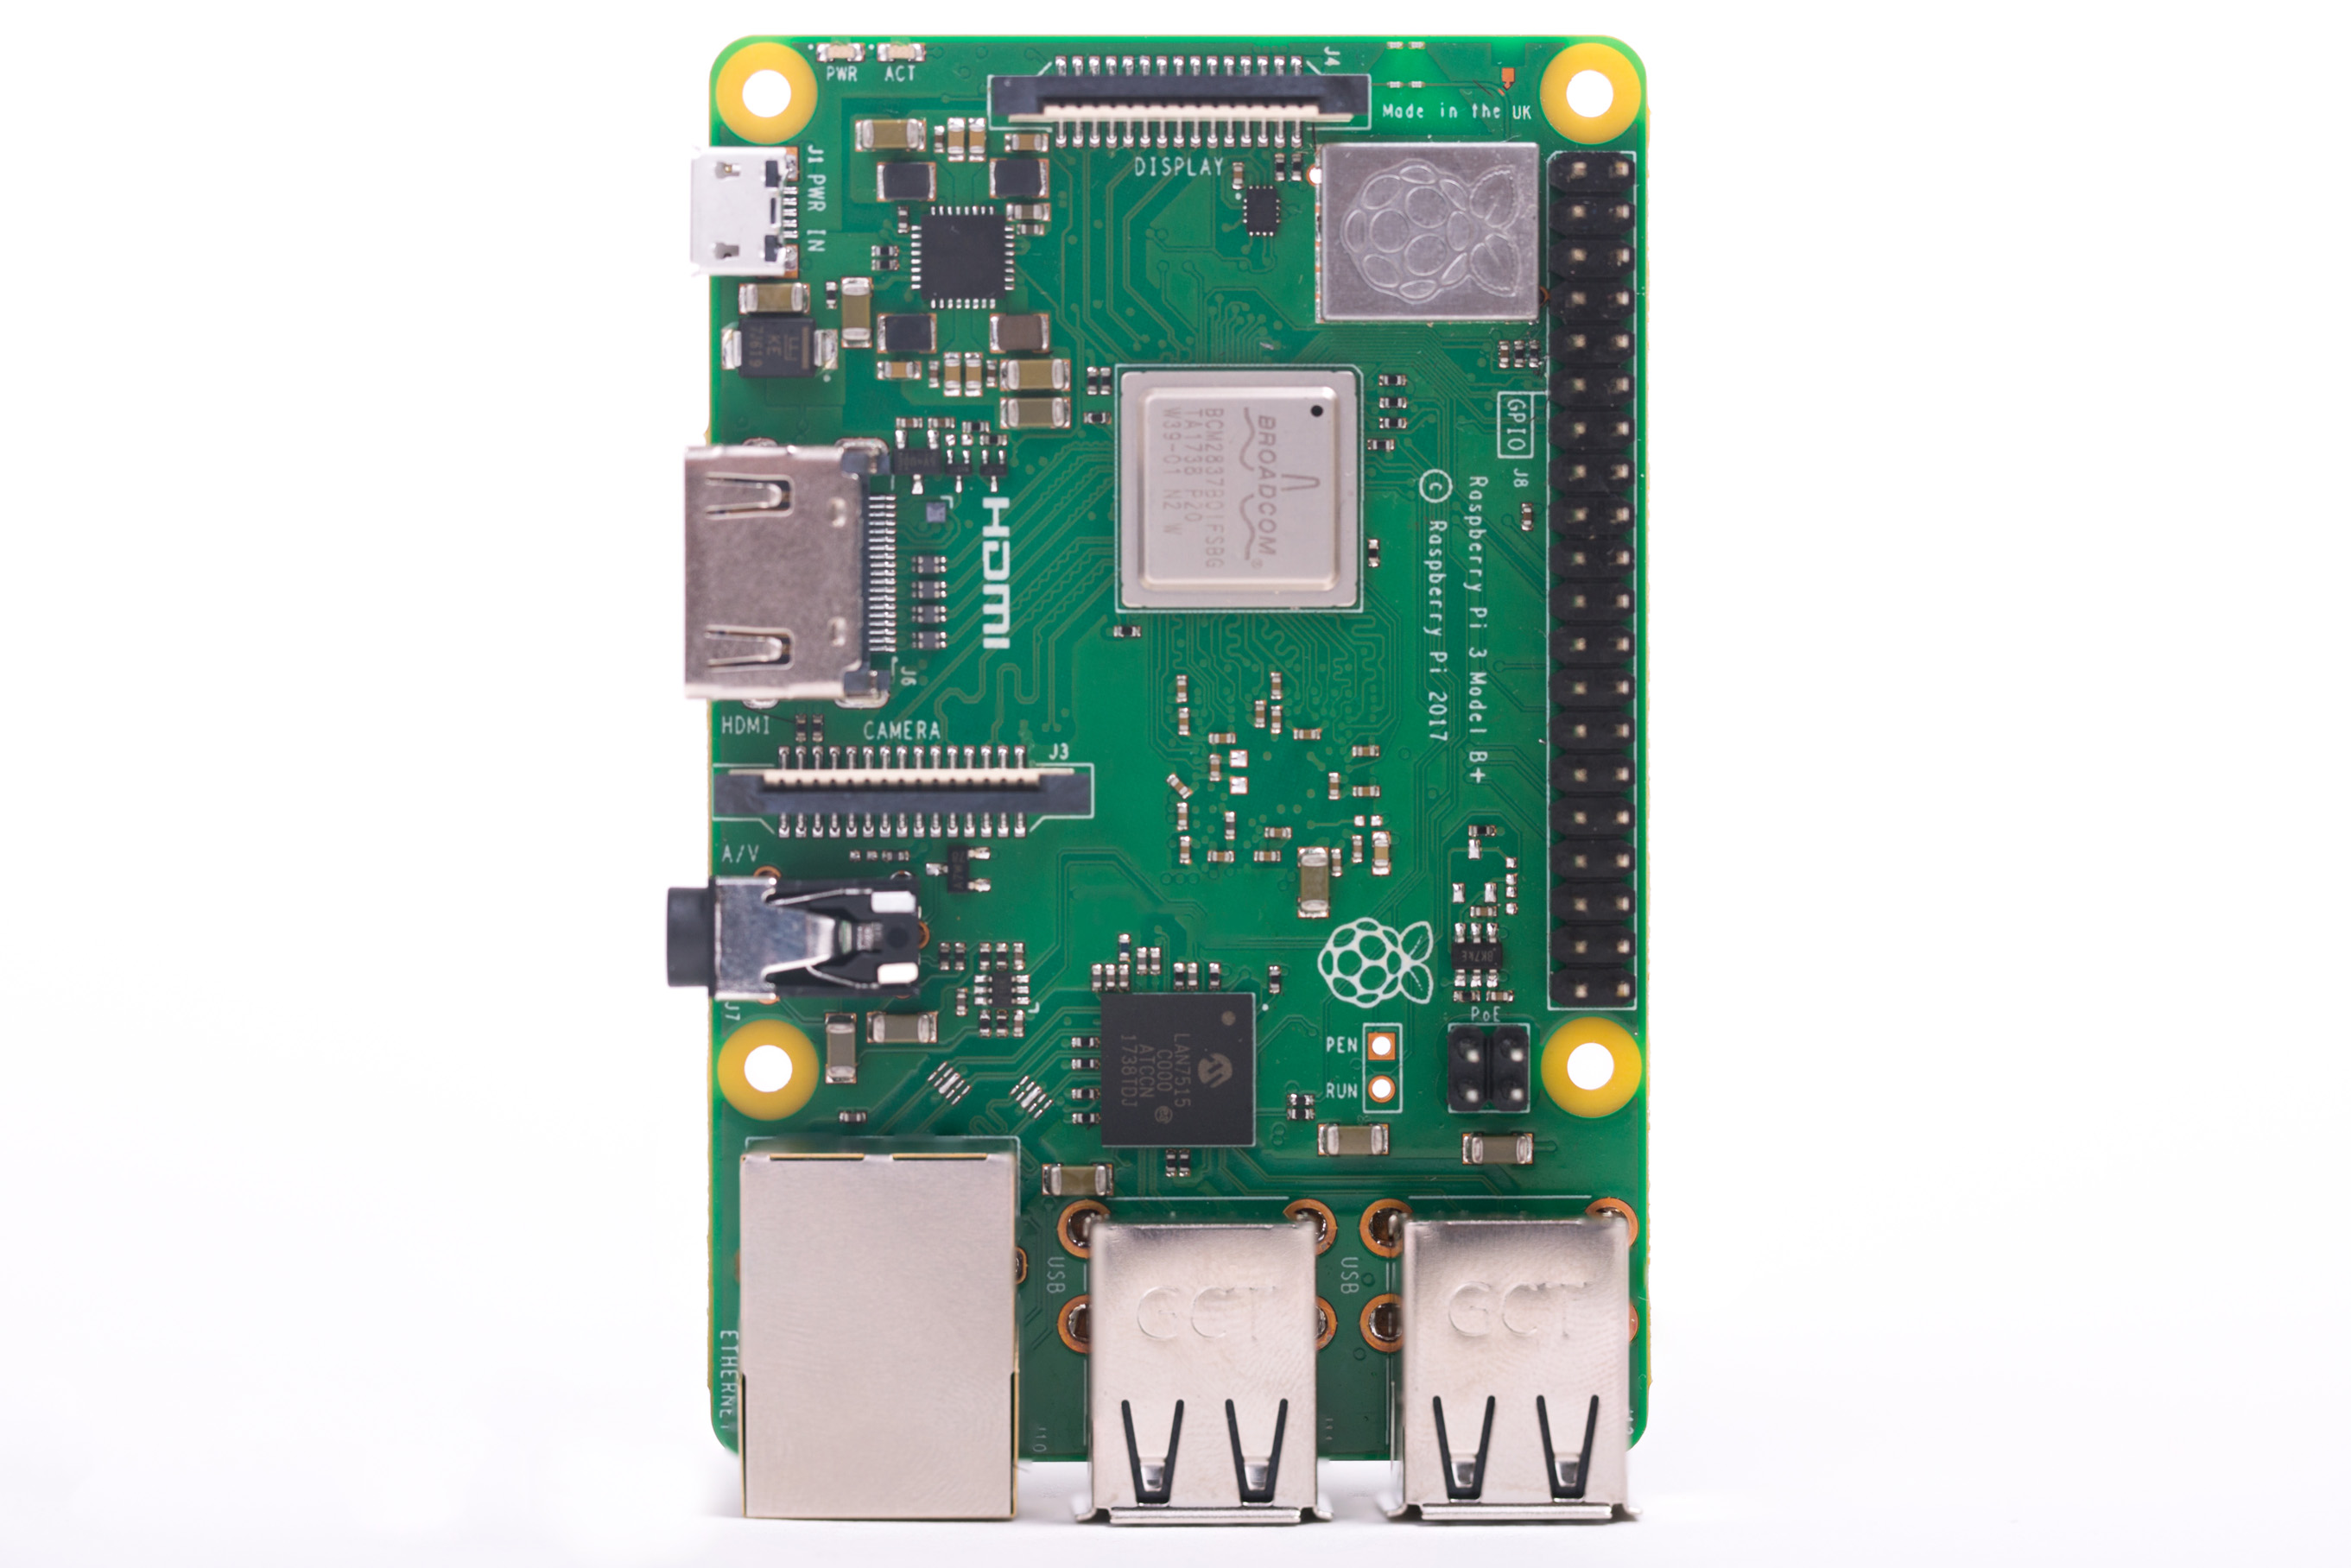 Raspberry Pi 3 Model B+ launched with improved performance